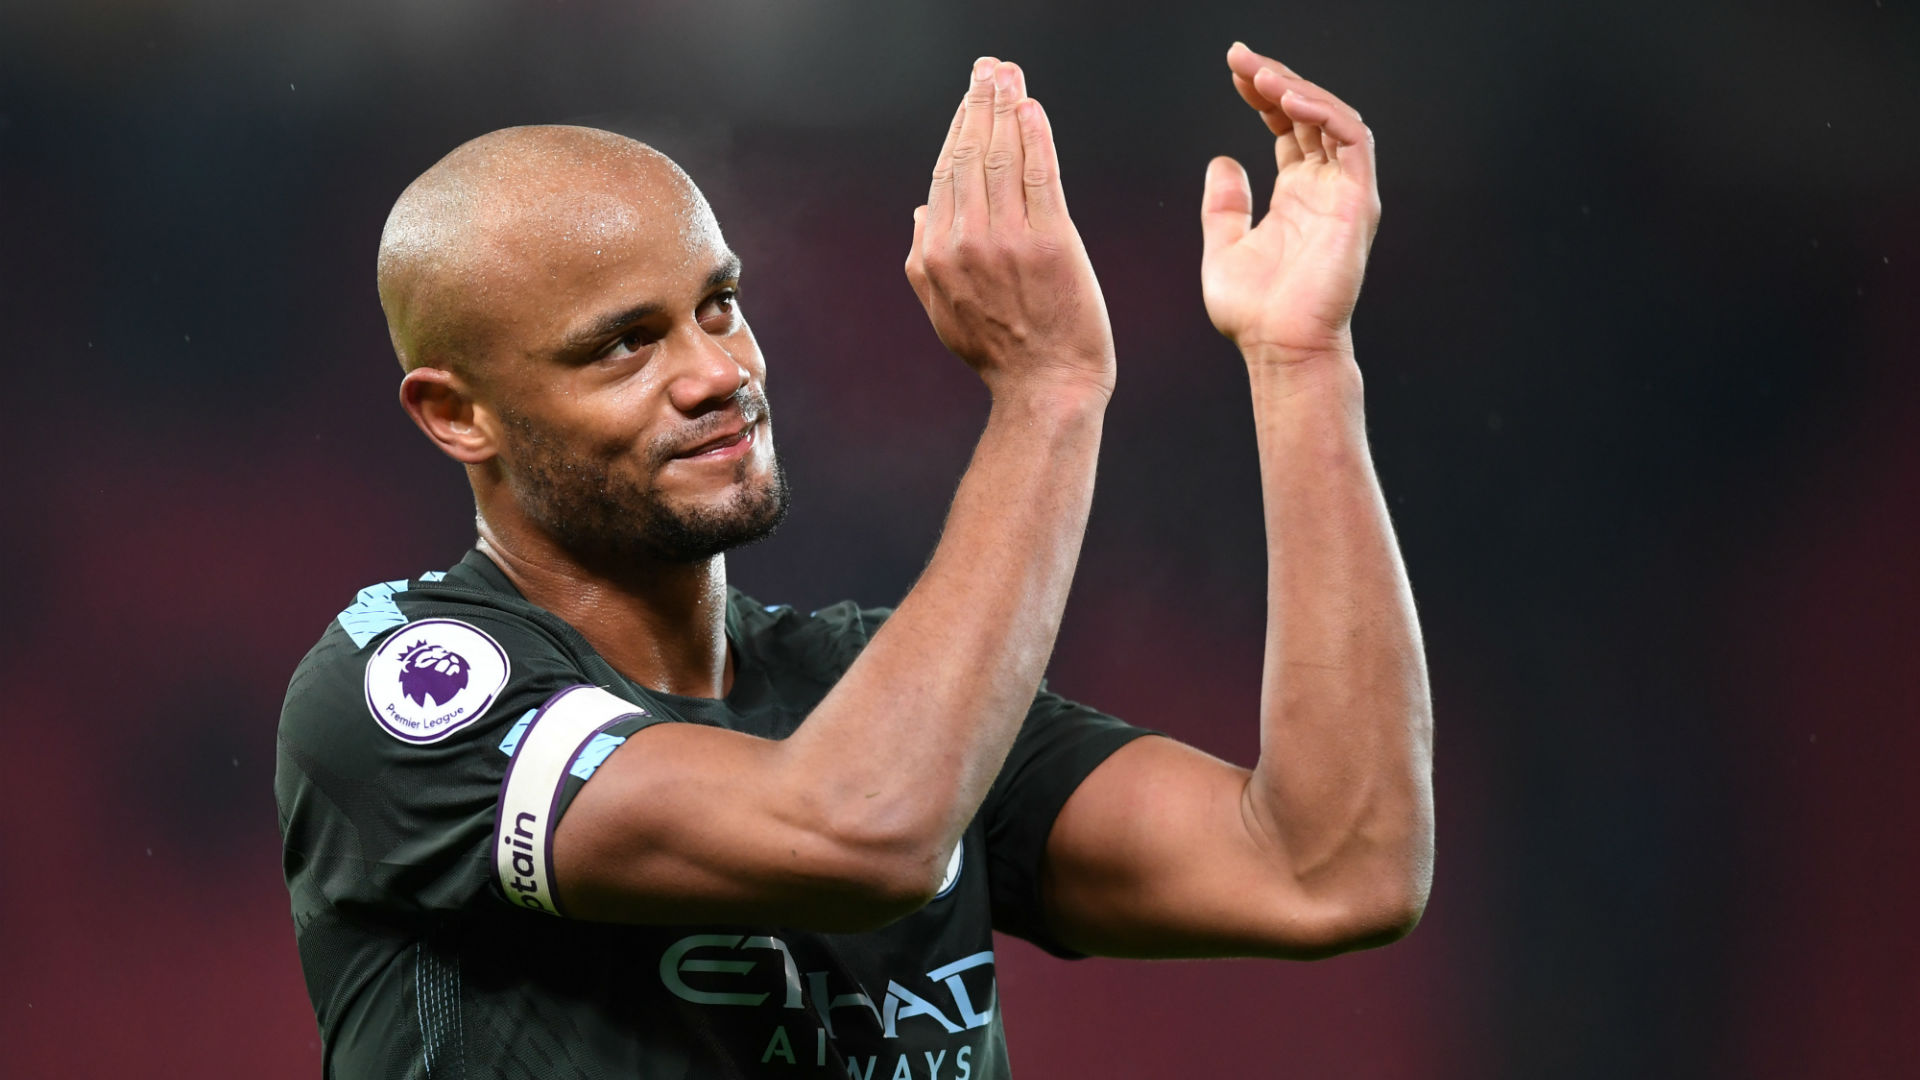 Manchester City can be crowned Premier League champions by beating Manchester United, a fantastic prospect for skipper Vincent Kompany.